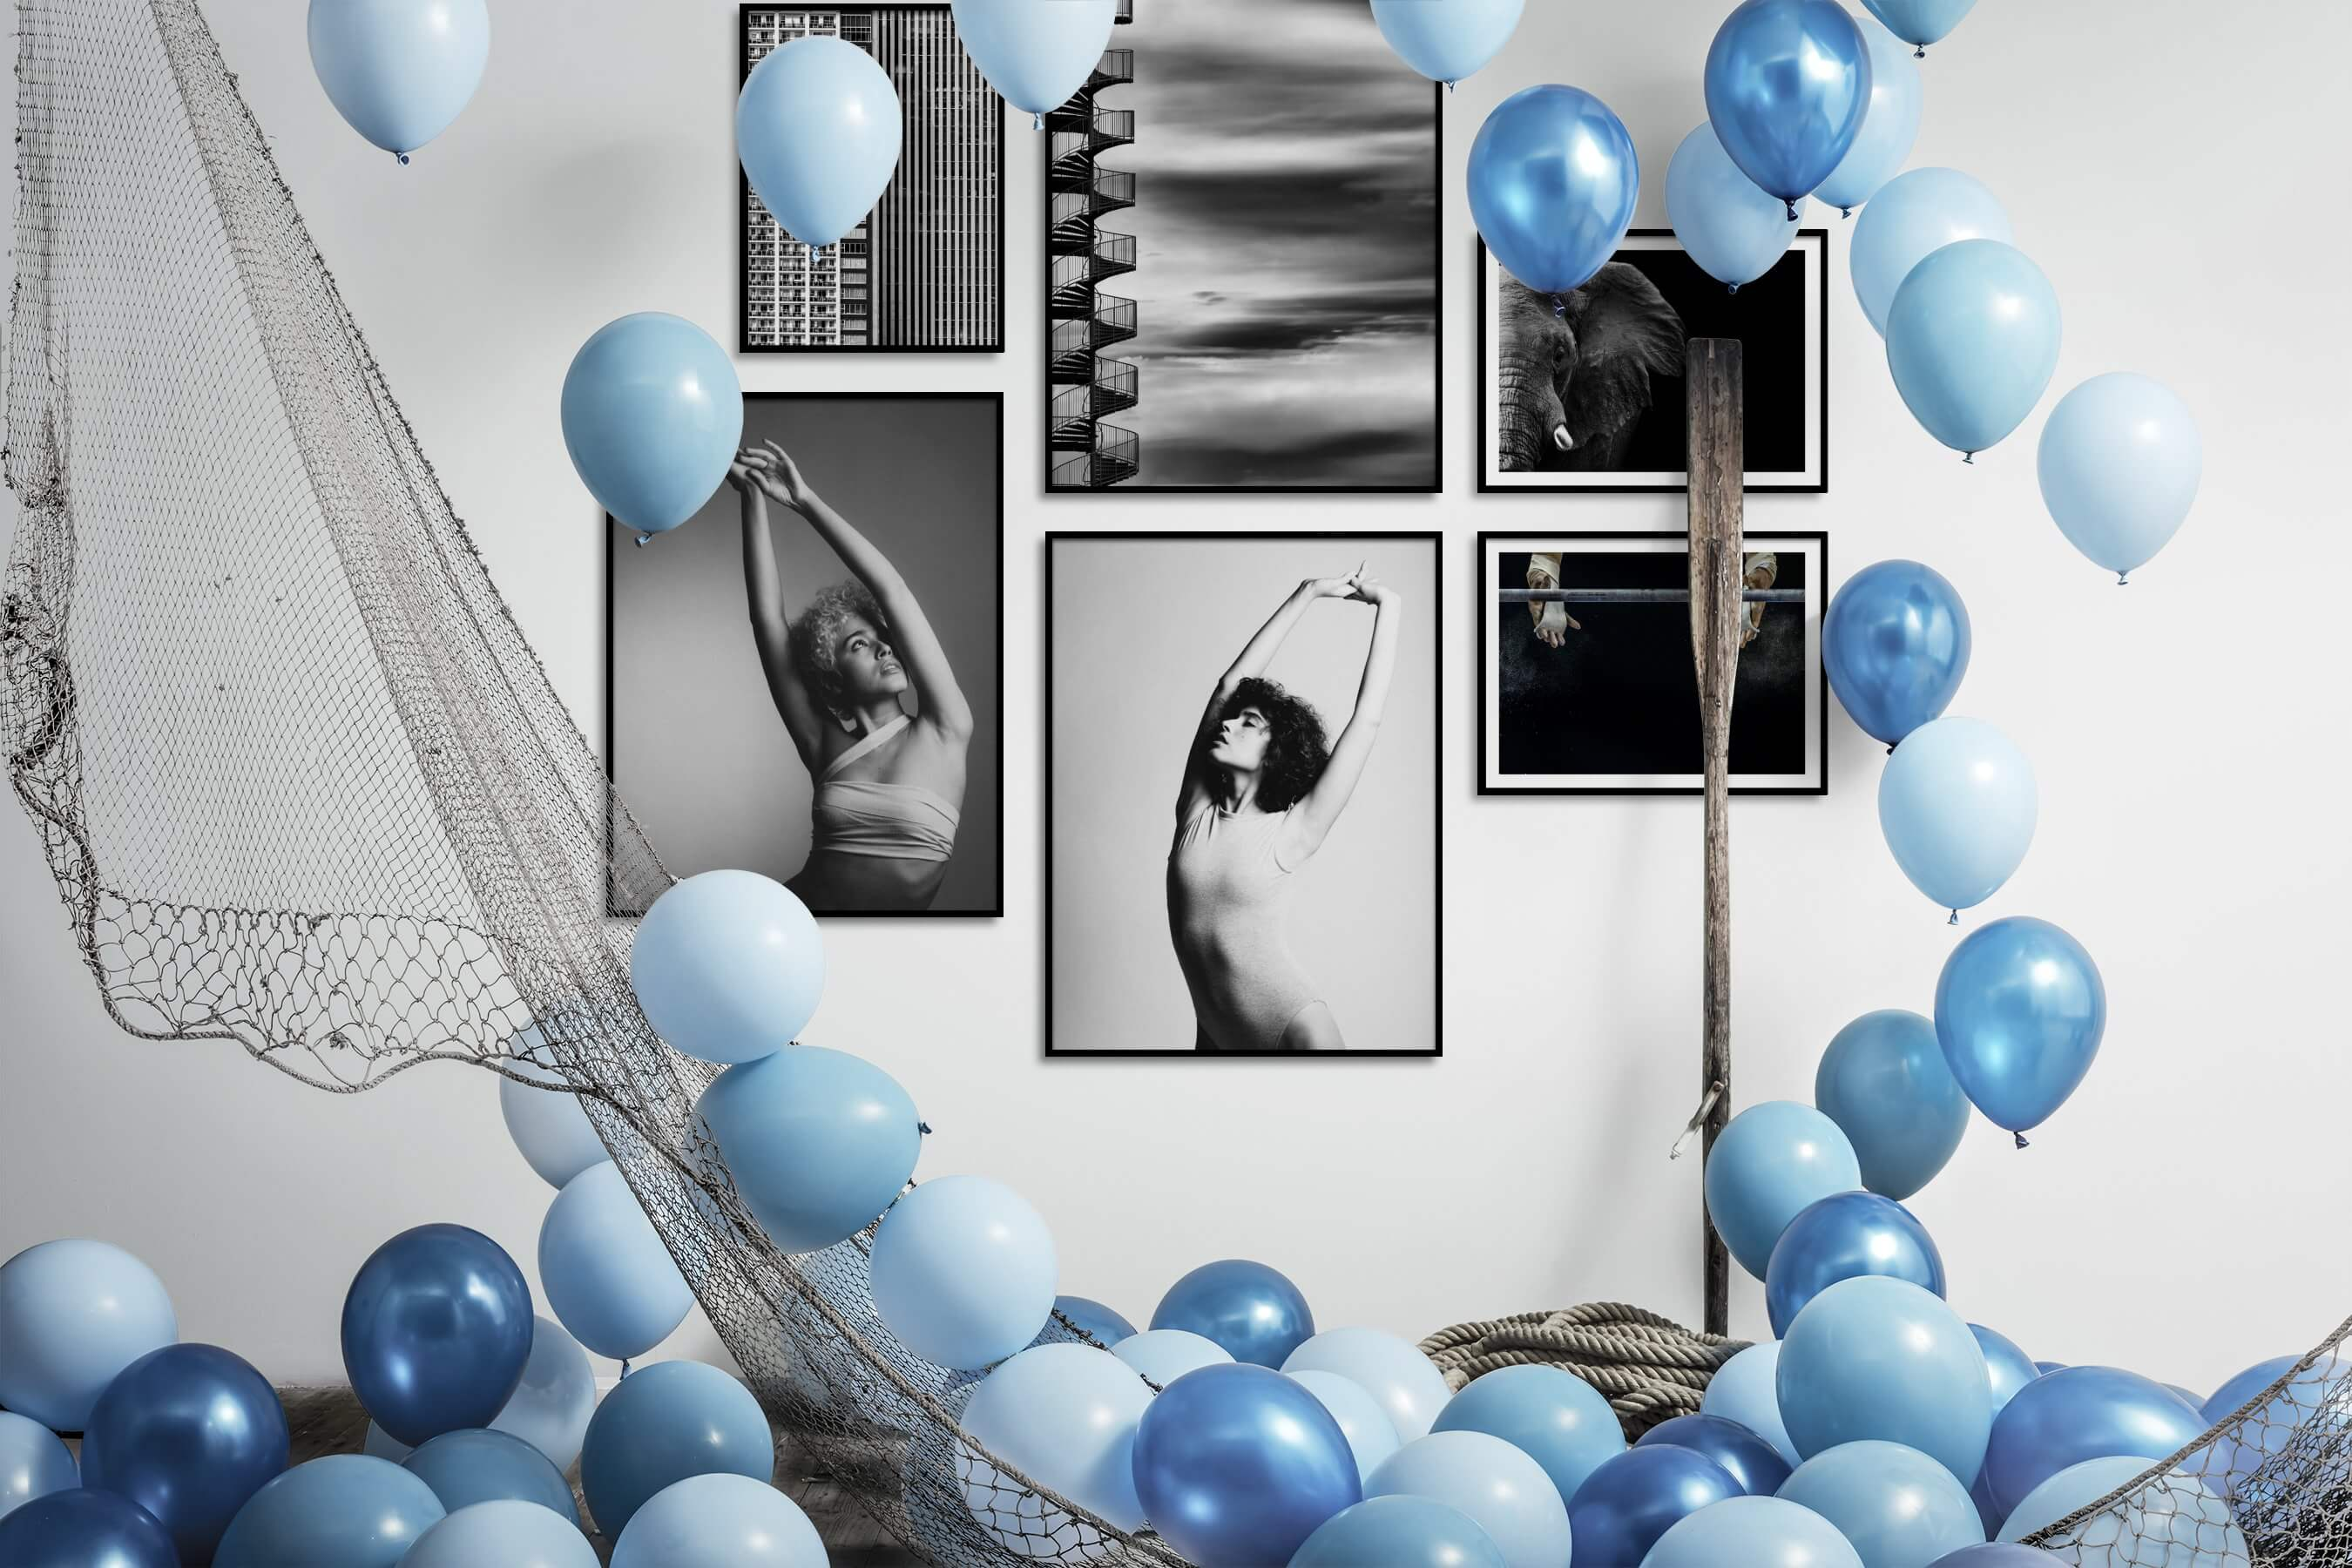 Gallery wall idea with six framed pictures arranged on a wall depicting Black & White, For the Maximalist, City Life, For the Moderate, Fashion & Beauty, For the Minimalist, Mindfulness, and Animals